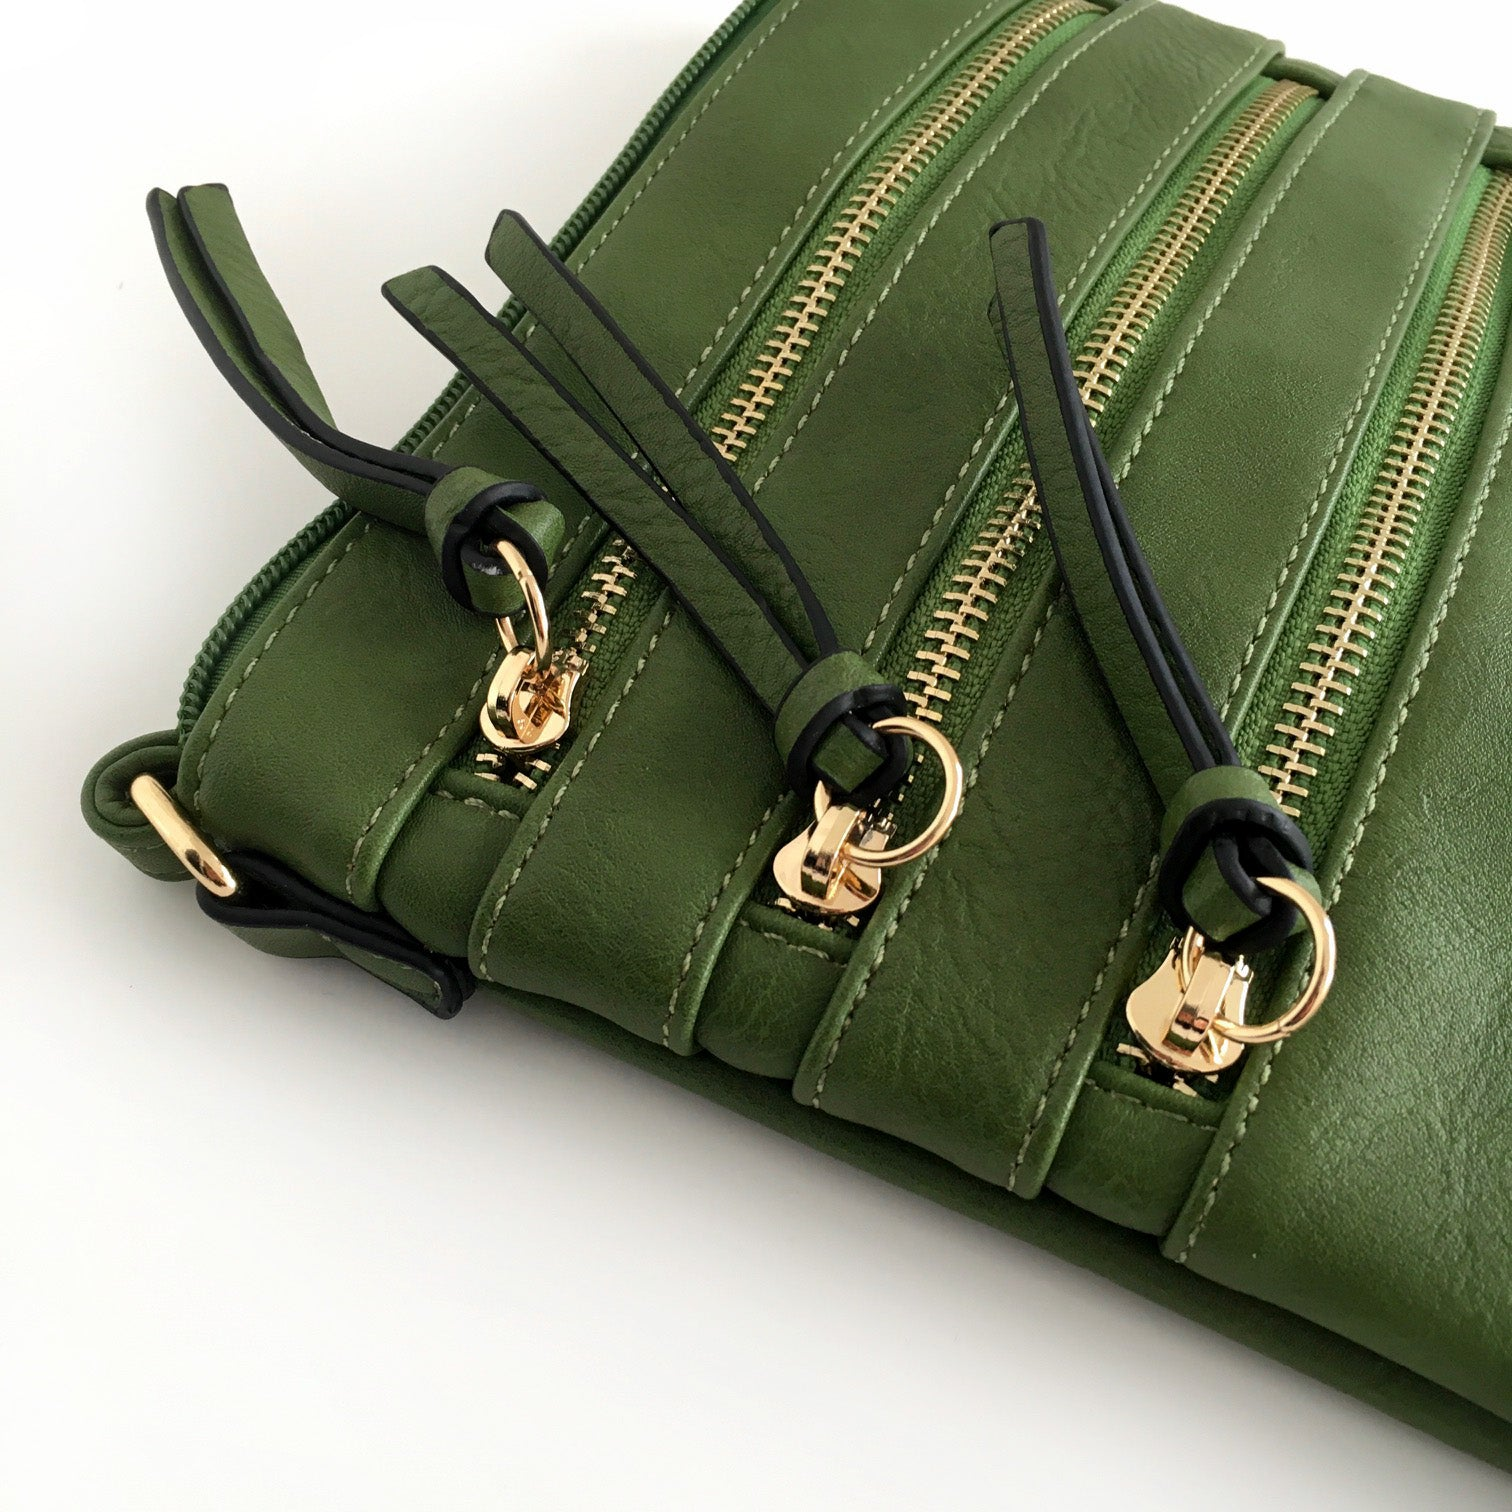 A-SHU GREEN SLIM MULTI POCKET CROSS BODY BAG WITH LONG STRAP - A-SHU.CO.UK